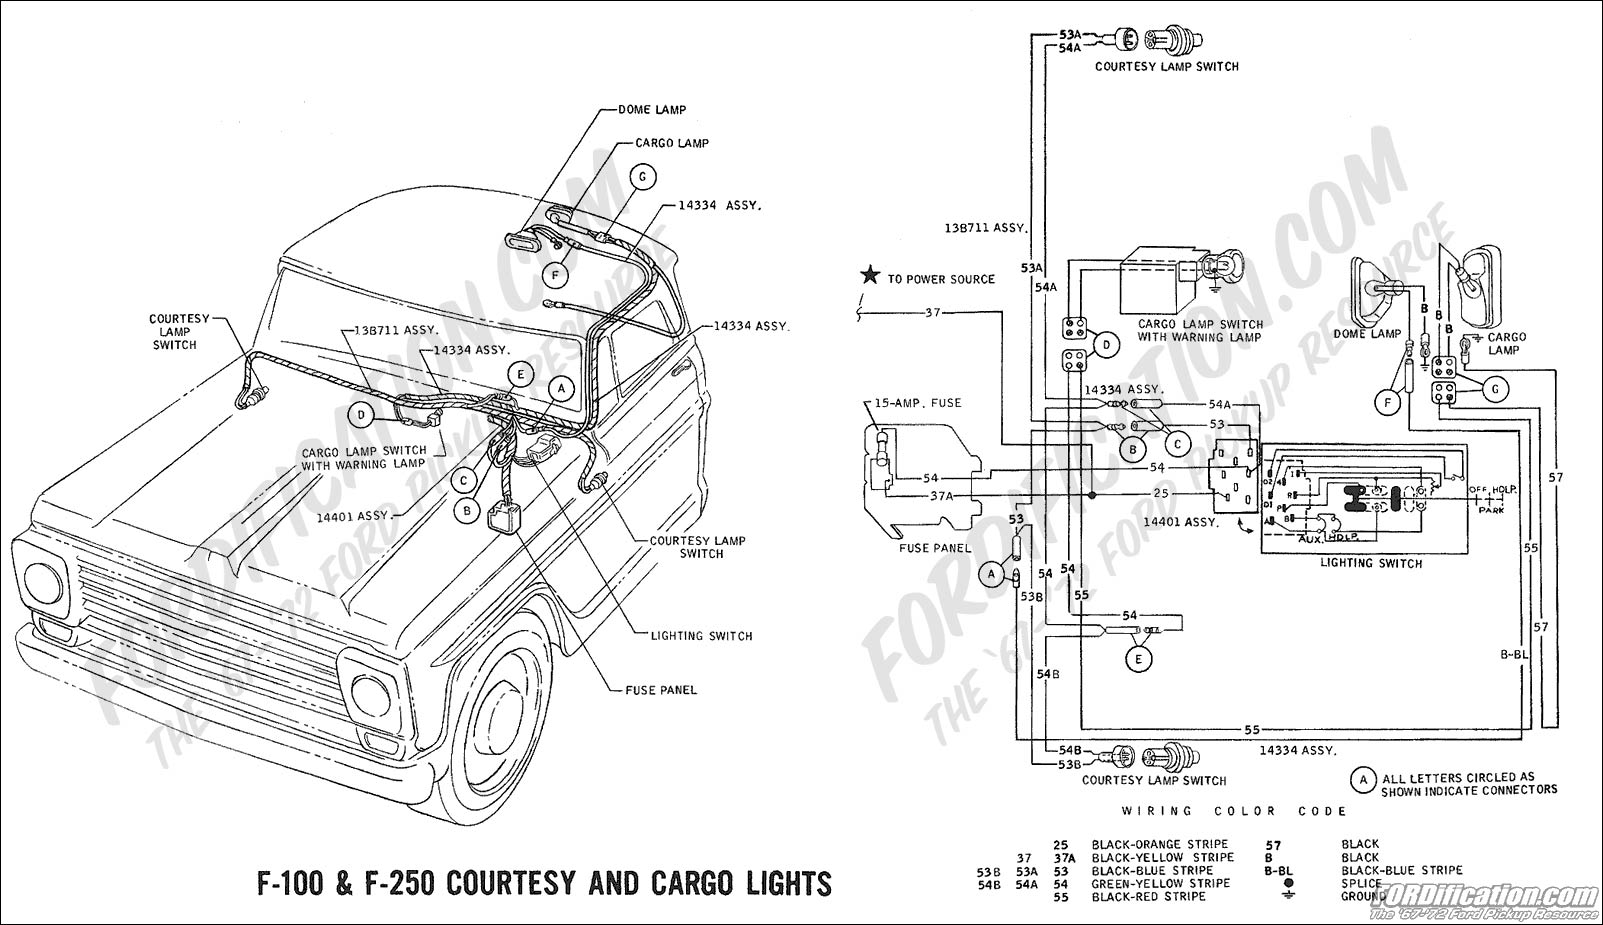 hight resolution of 1972 f100 wiring diagram wiring diagram home 1972 ford f100 steering column wiring diagram 1972 f